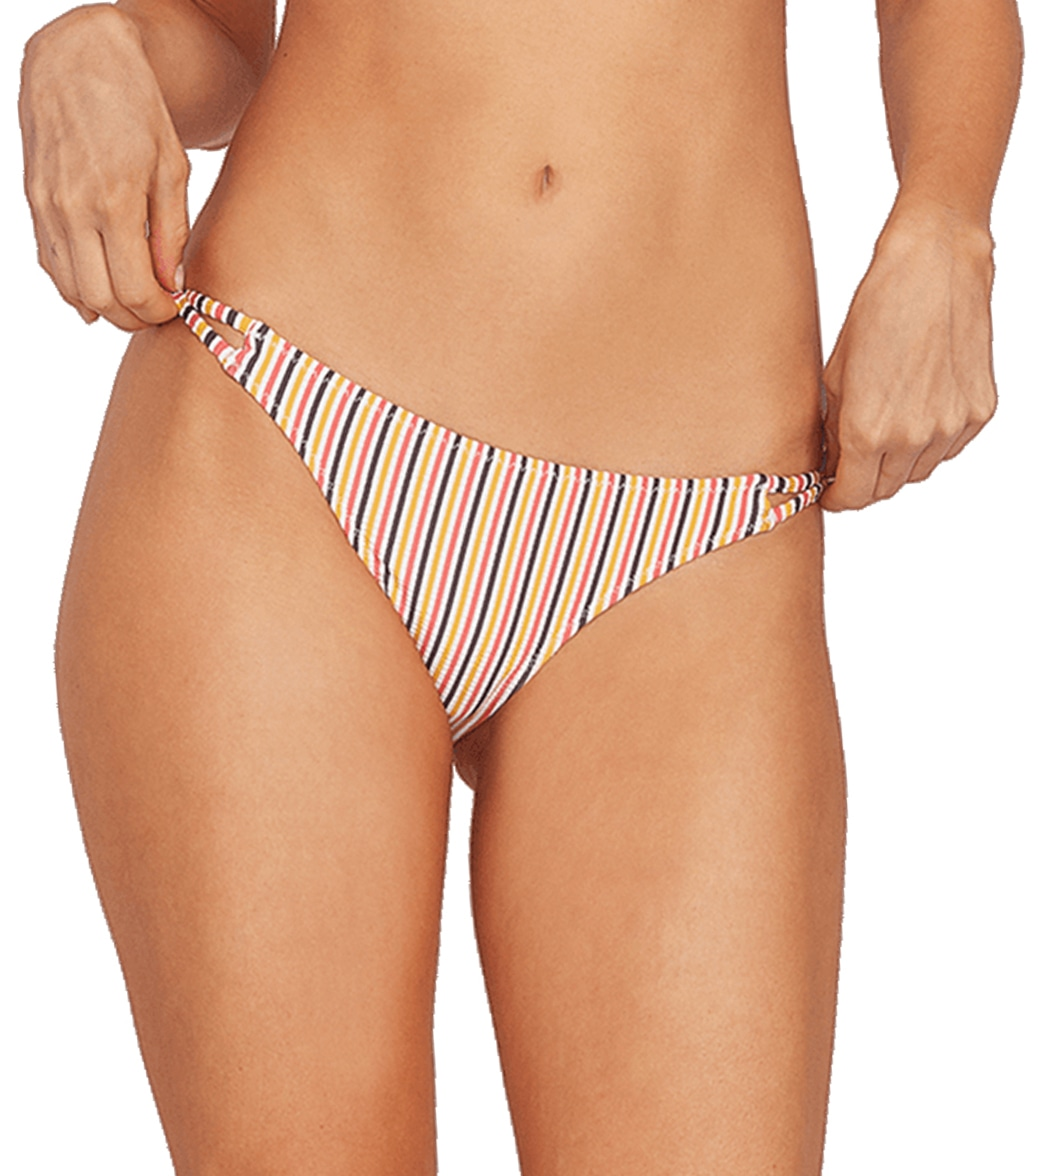 Mix and match your swimsuit tops with the E\\\'Ry Minute Hipster Bikini Bottom featuring a stripe print. FeaturesPull on Hipster Full bottom with metal ring and strap detail at wearer\\\'s sides. Volcom metal badge at wearer\\\'s center back waist opening. Full coverage fit. DetailsFabric: 56% Polyester, 40% Nylon, 4% Elastane Yarn Dye Pucker Jersey. Care: Hand wash, cold. Line dry. Closure: Pull on. Fit: Hipster. Adjustable: No. Bottom Coverage: Moderate. Rise: Low. Country of Origin: Imported. About Vo